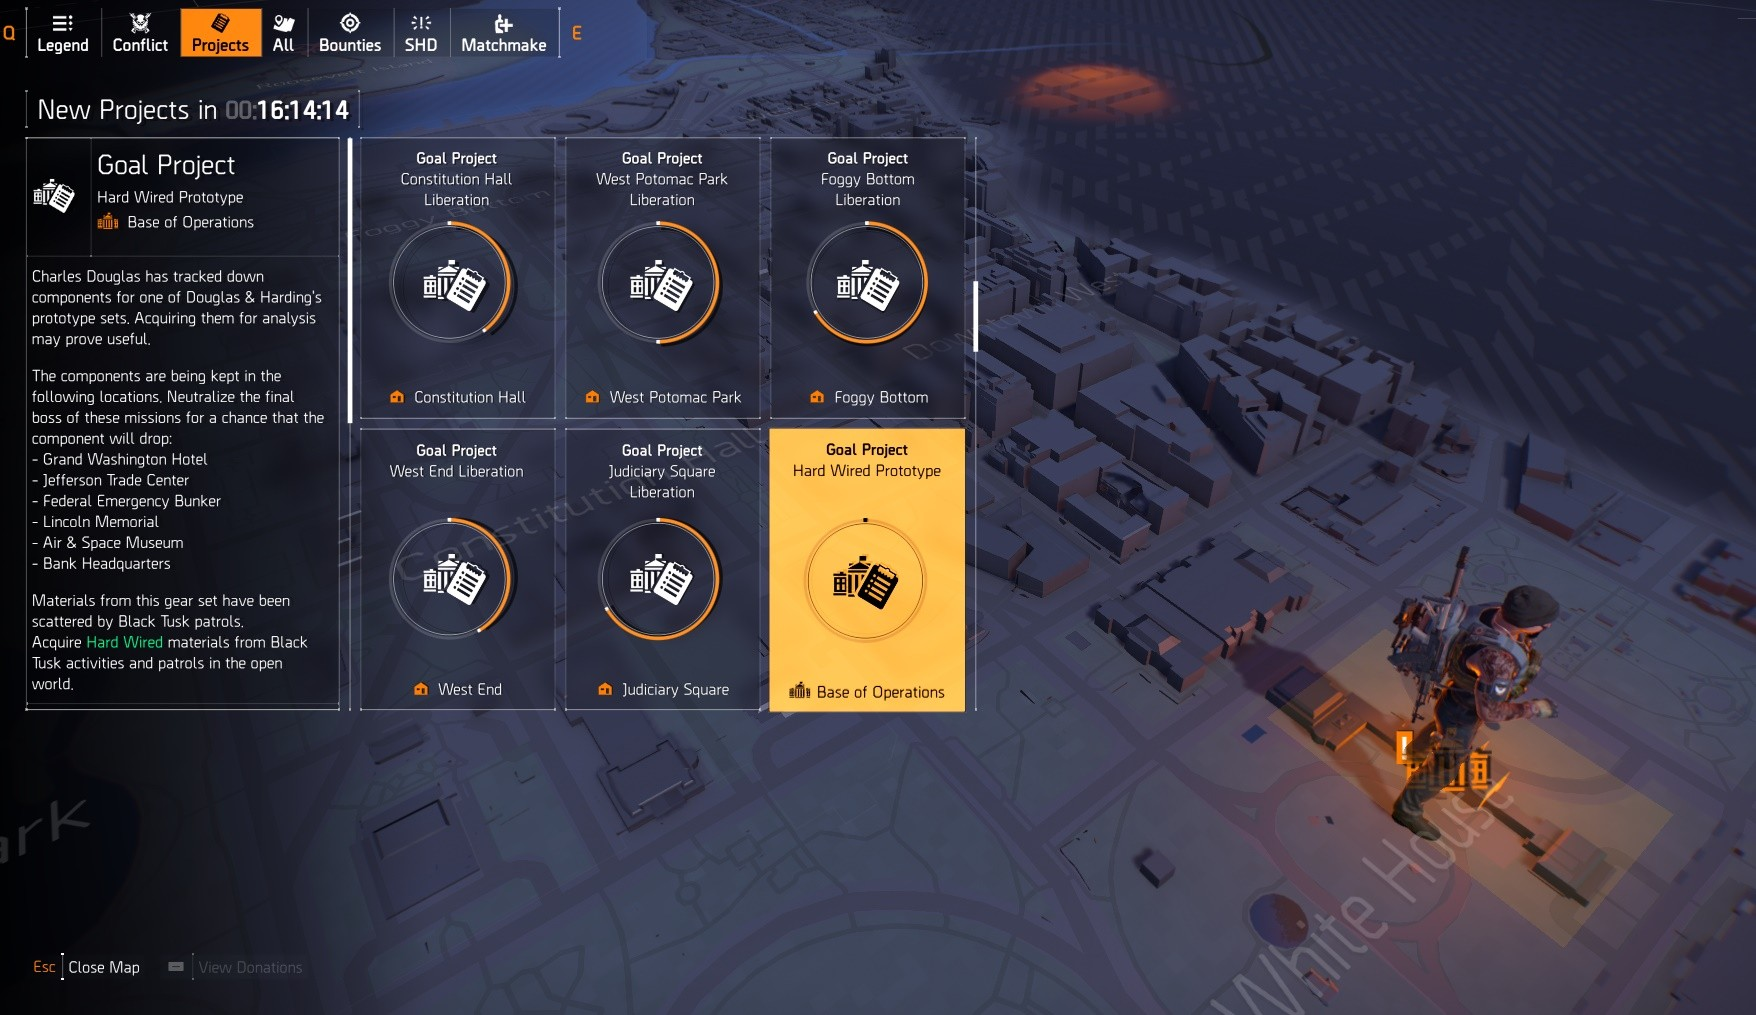 The Division 2 Guide: List of All Gear Sets, How to Obtain Hard